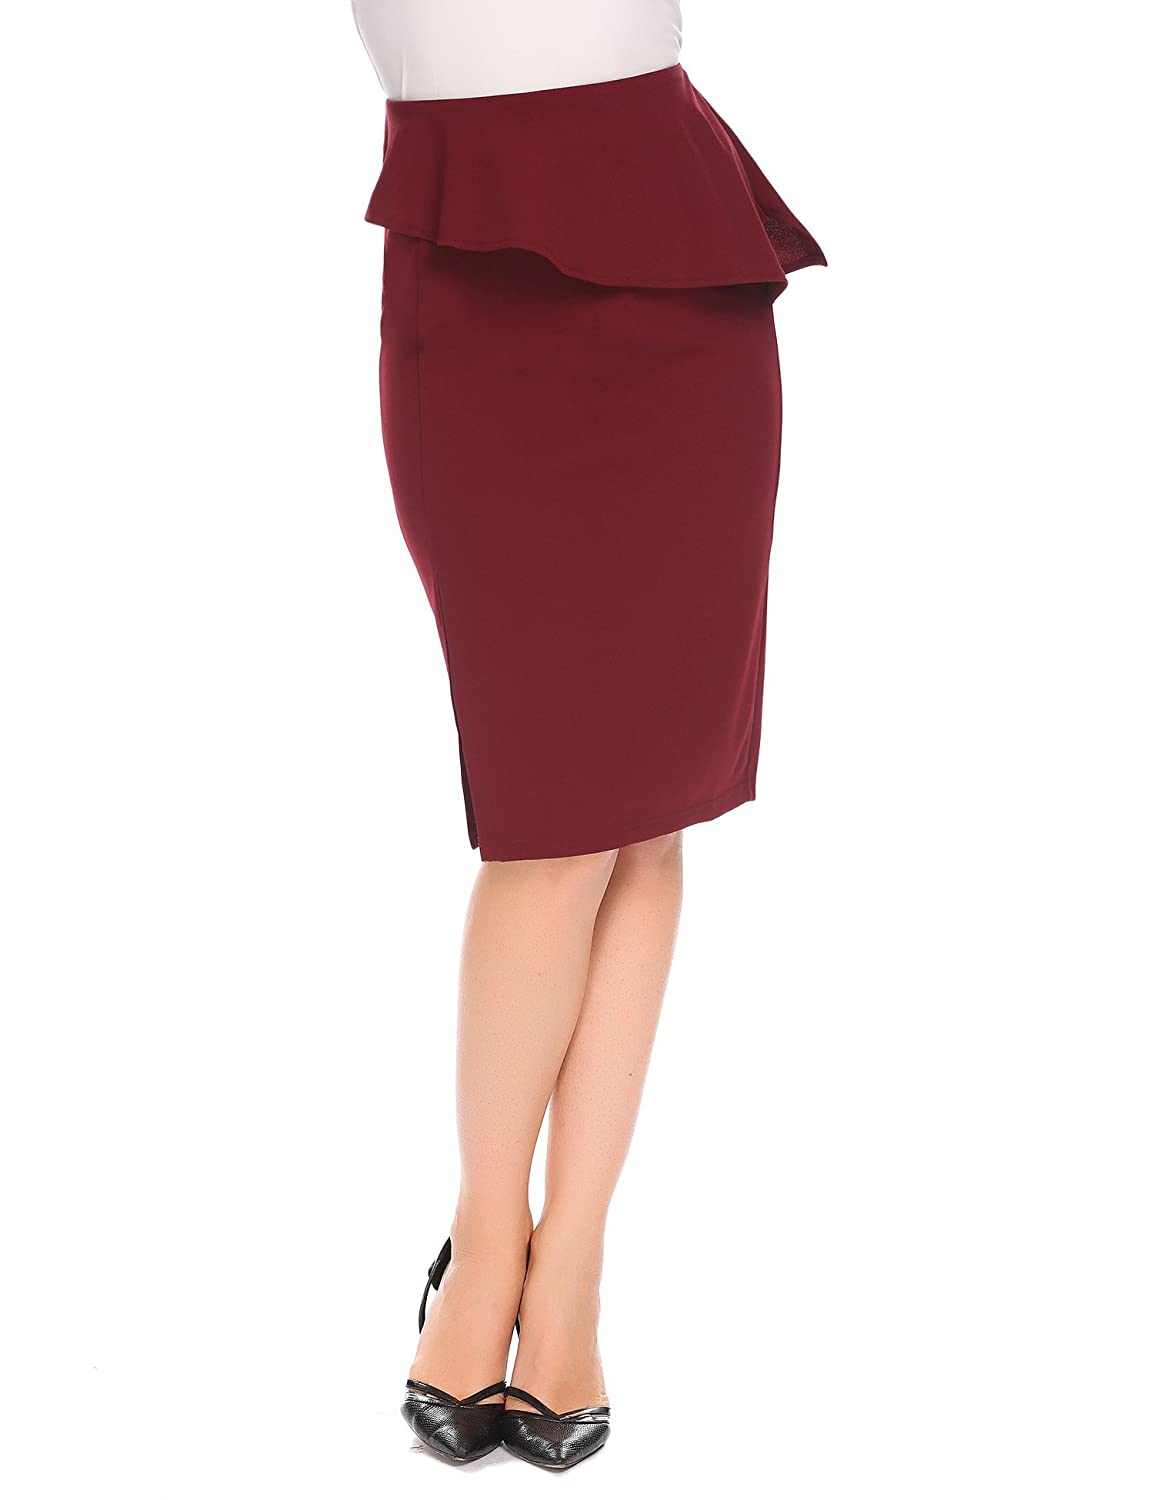 b6e337d3a2 Womens Midi Pencil Skirt Red Elastic High Waist Knee Length Slim Bodycon  Slit Office Skirts at Amazon Women's Clothing store: